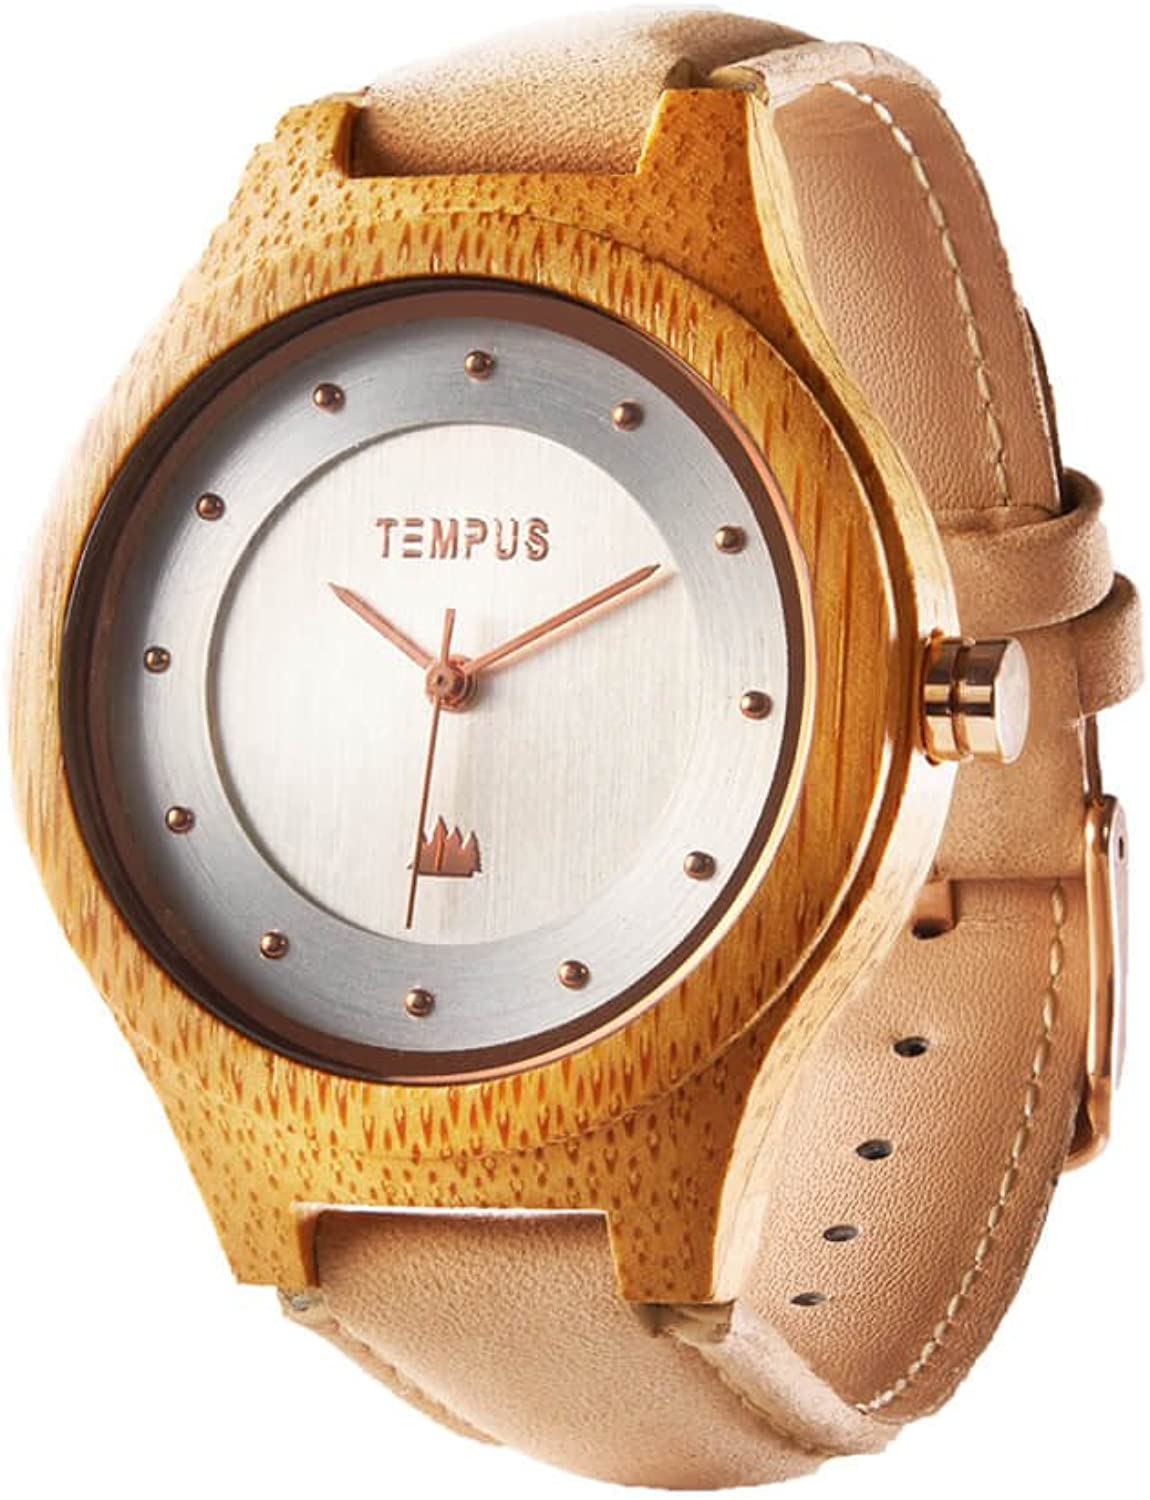 TEMPUS – Callista – Women Wood Watch Bamboo Case Wooden Lady Pink Leather Strap Wristwatch – TWW05